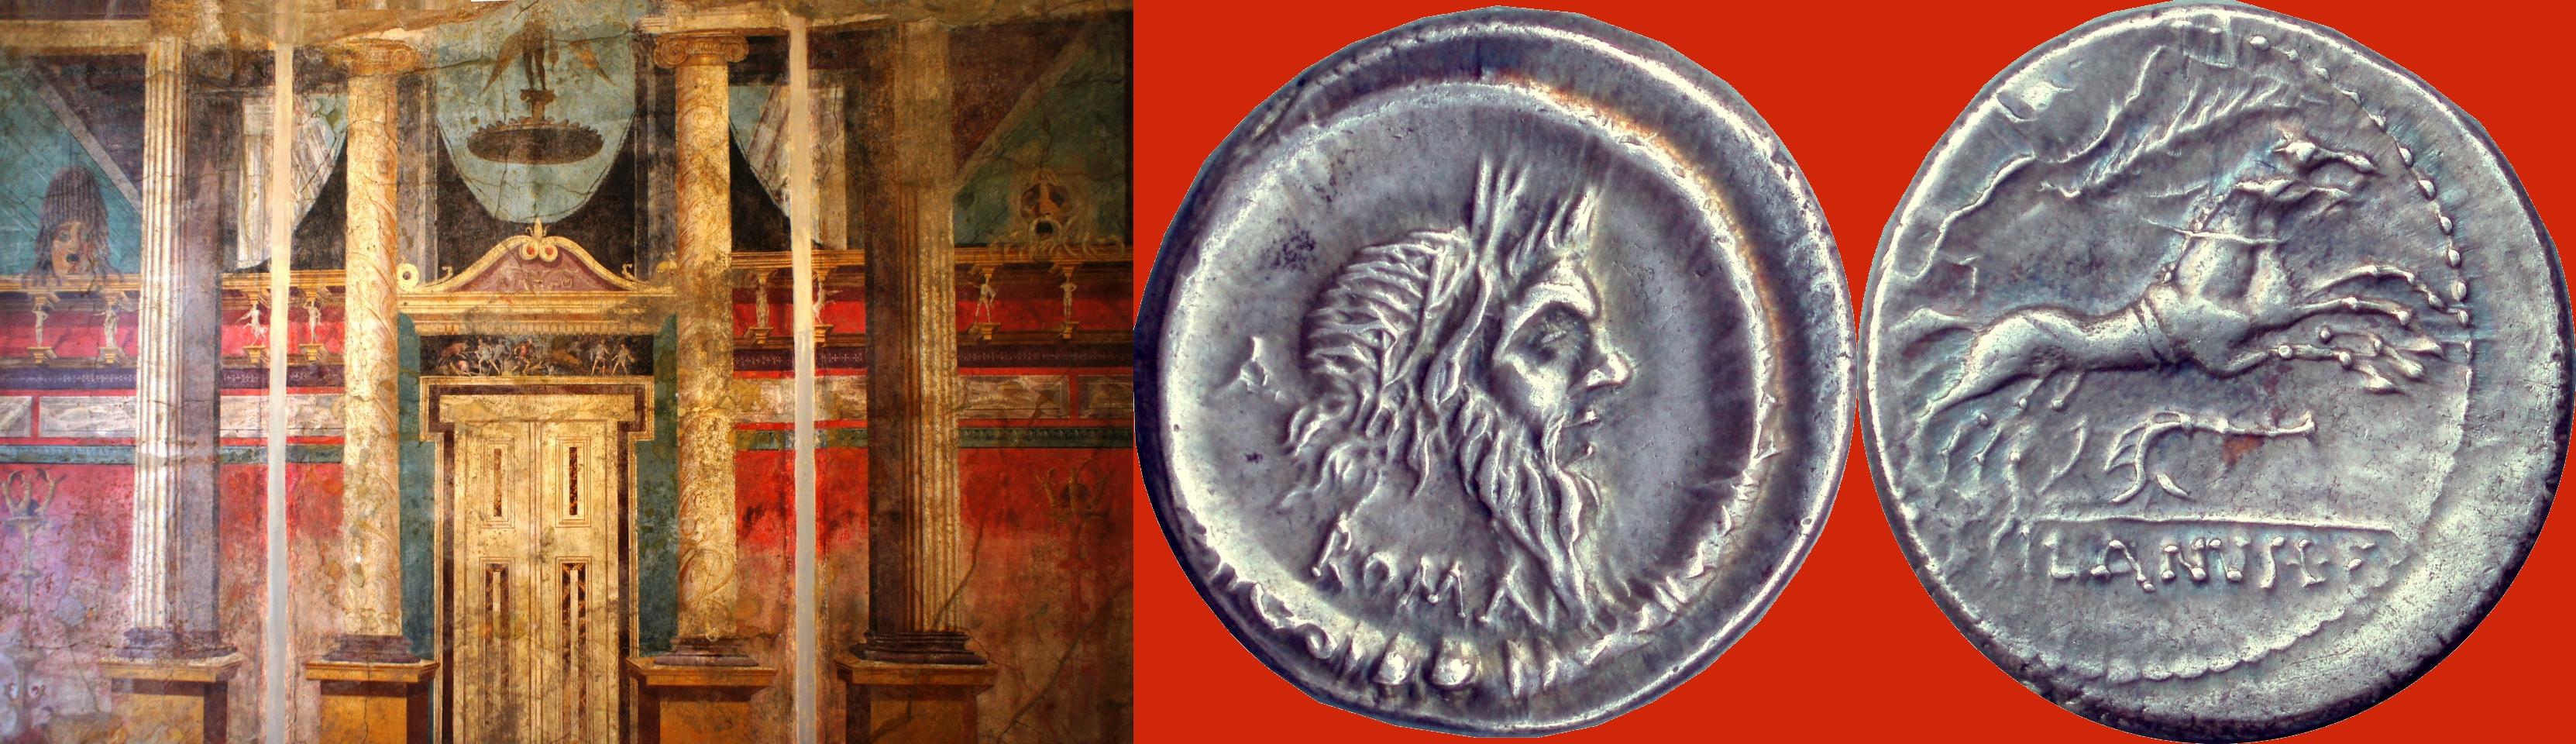 337/1 coin of Decimus Silanus with Mask of Silenus 91BC, and architectural fresco with Mask of Silenus from the Boscoreale villa of Fannius Synistor